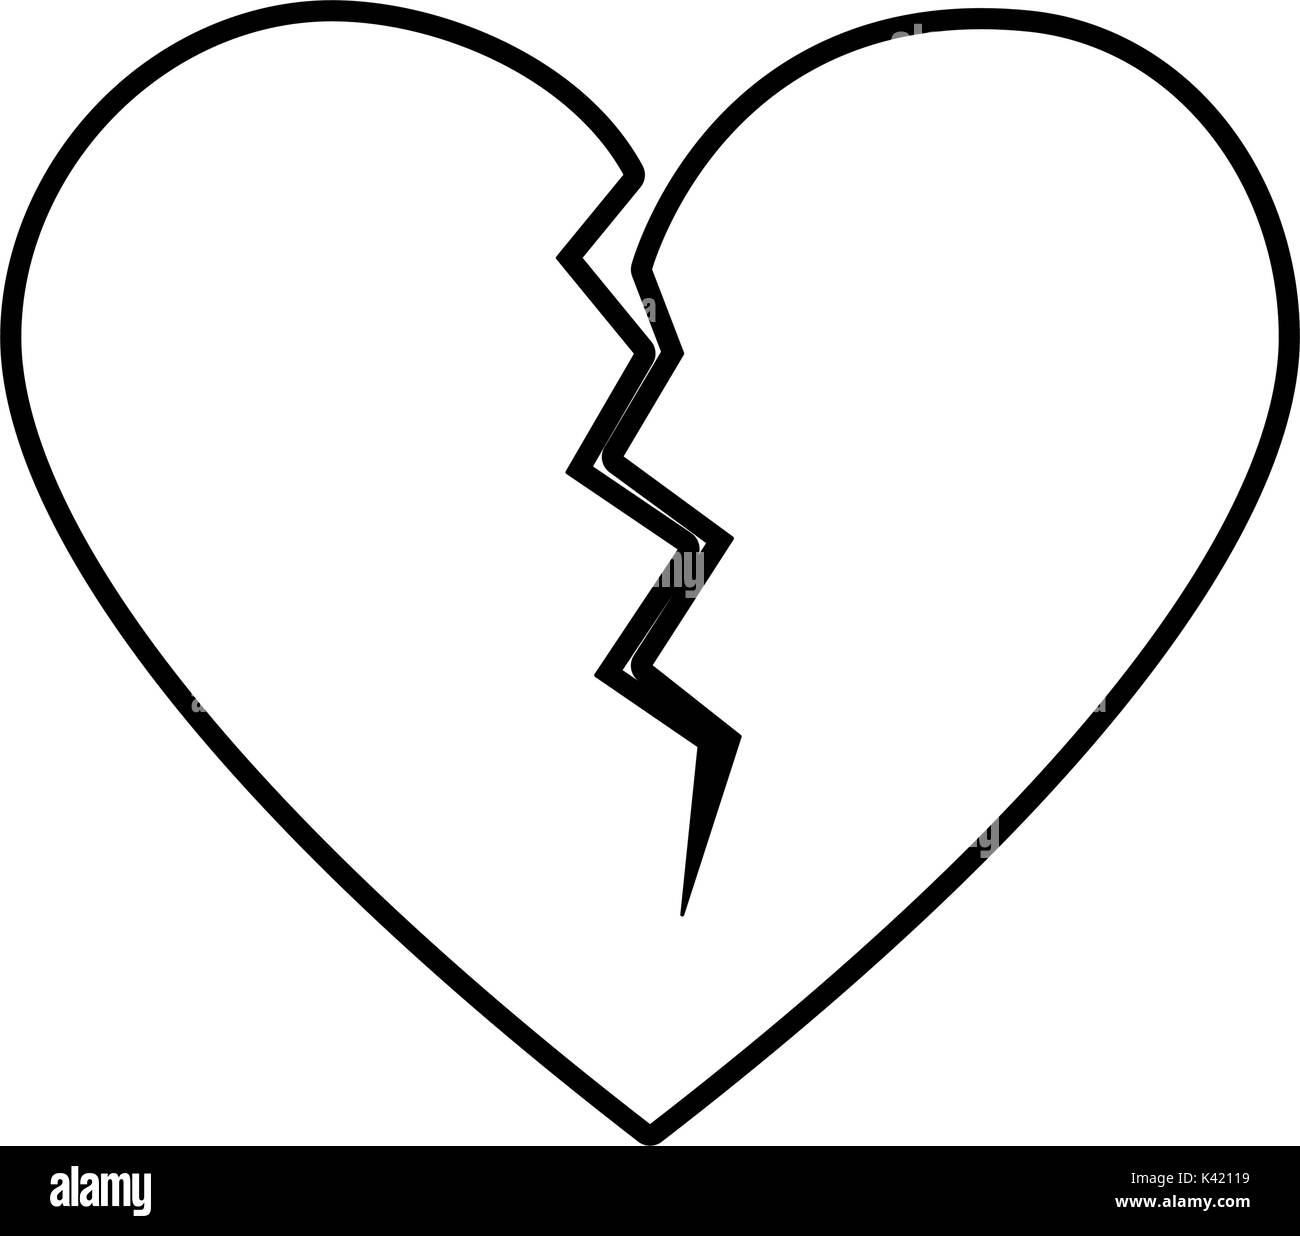 Broken heart black and white stock photos images alamy isolated broken heart design stock image biocorpaavc Images